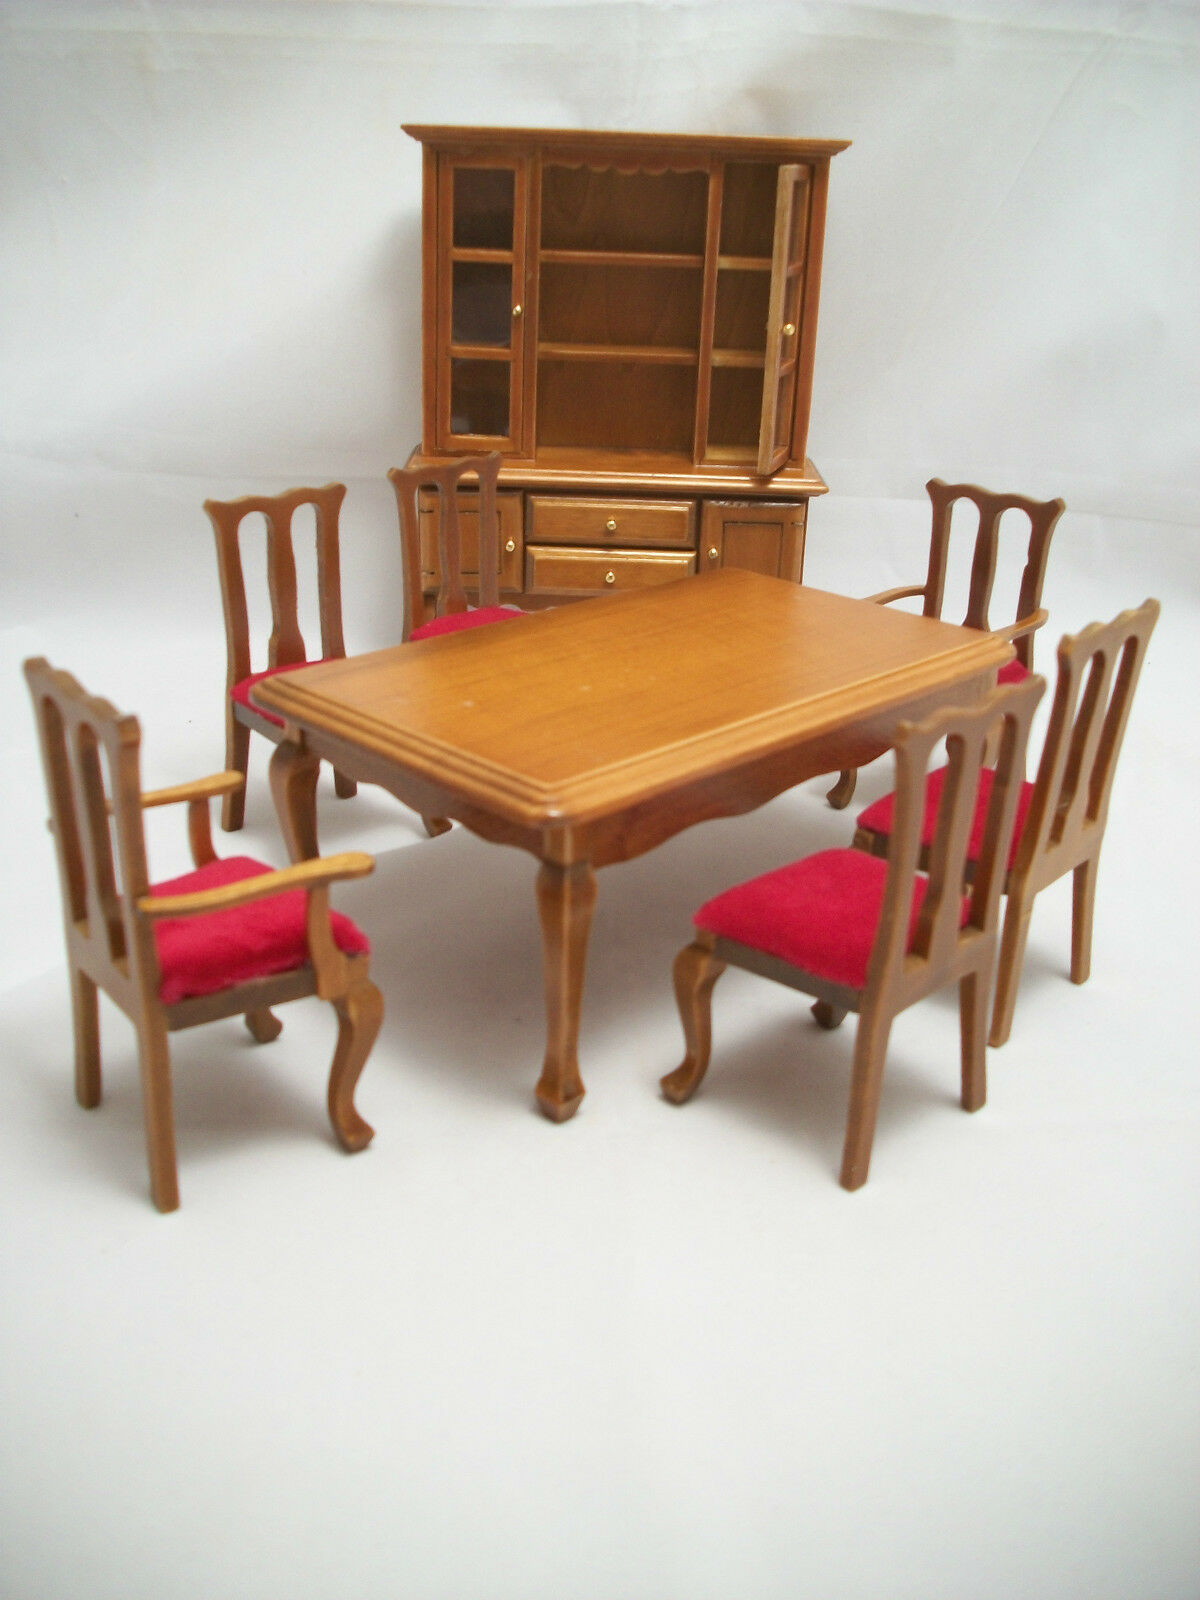 Dining Room Set  w Hutch & Chairs  walnut dollhouse 1/12 scale T0052 8pc wooden